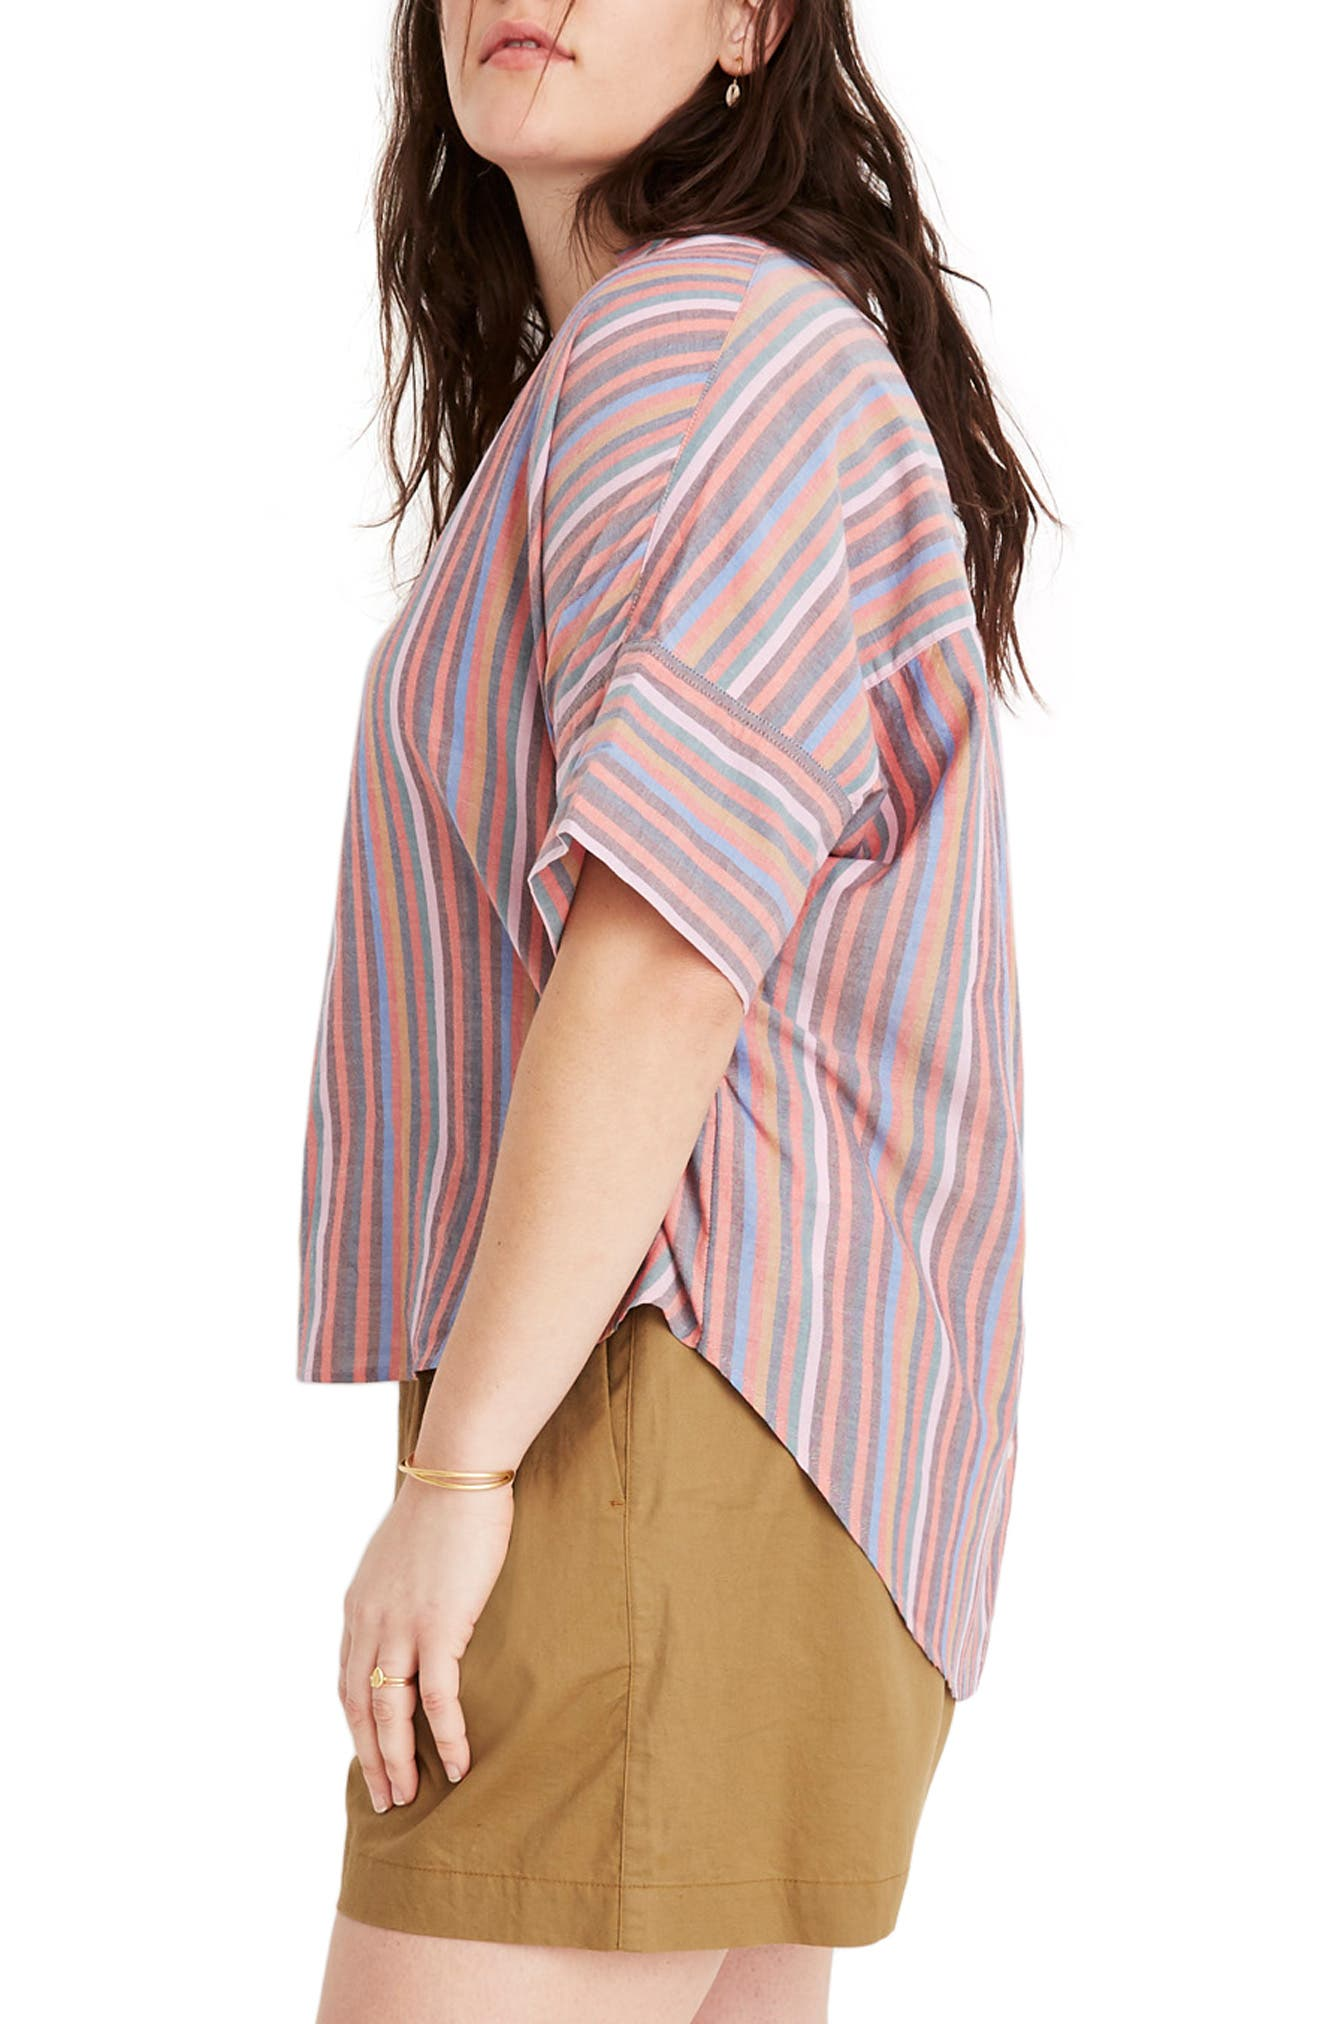 MADEWELL, Courier Rainbow Stripe Button Back Shirt, Alternate thumbnail 7, color, MULLED WINE SMITH STRIPE